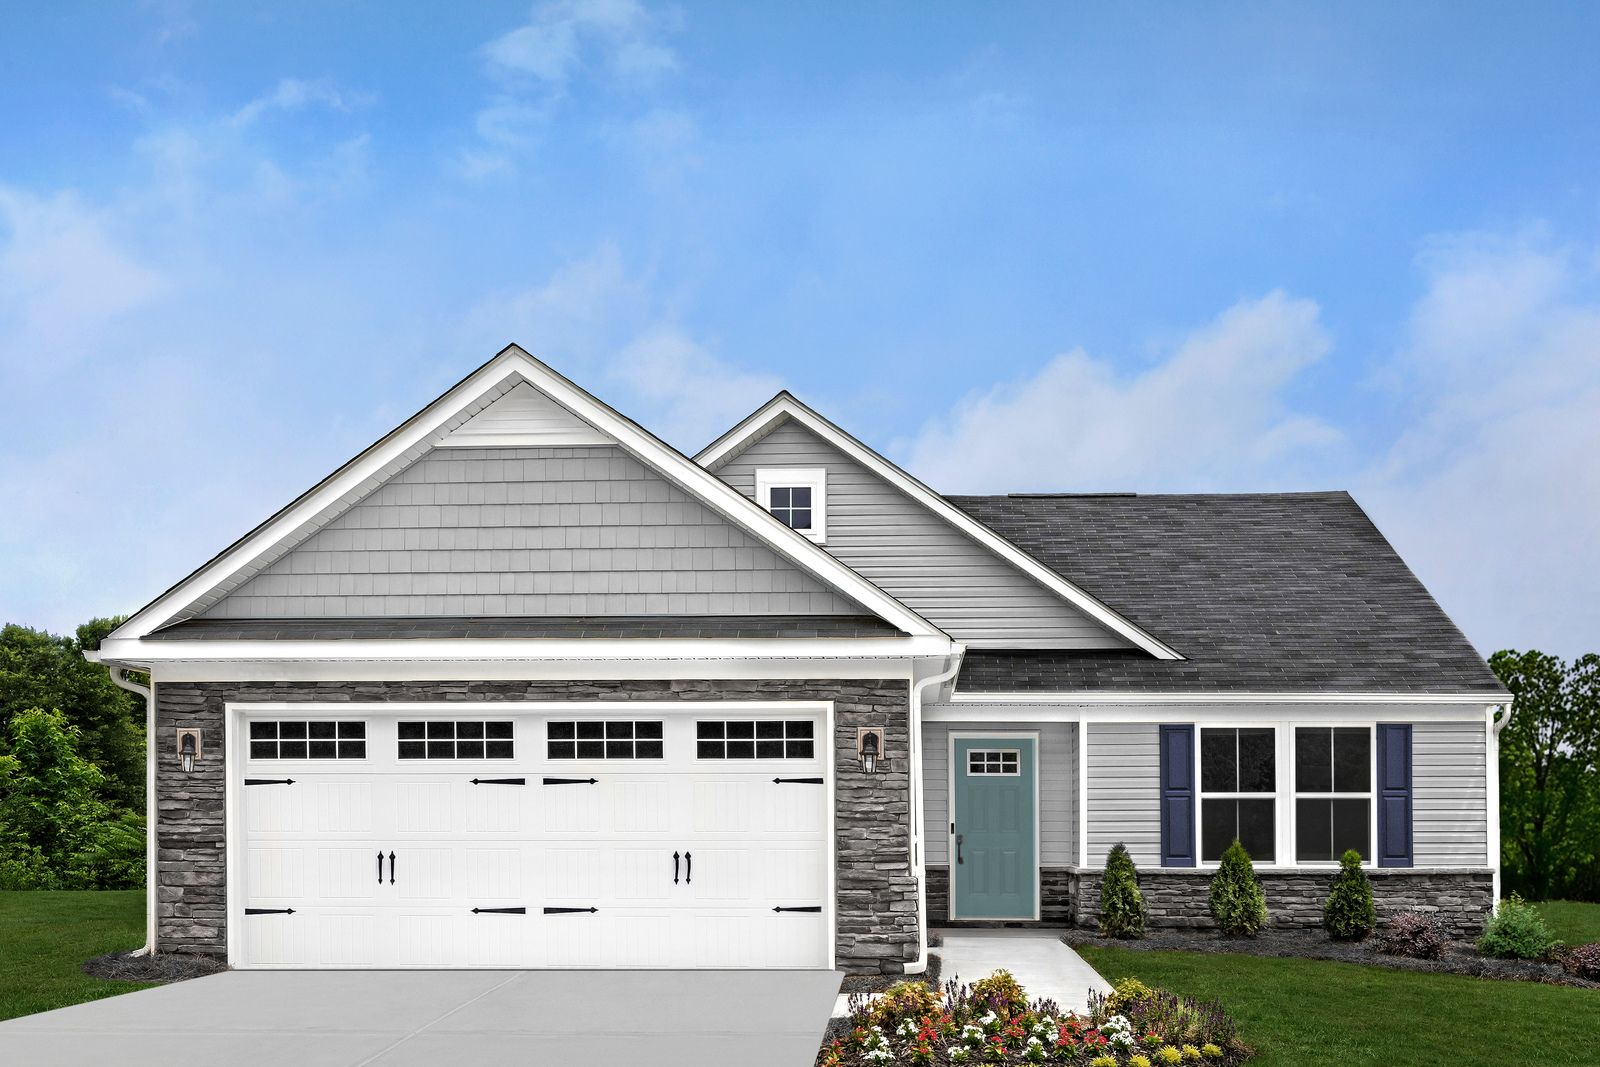 Welcome home to CARRIAGE TRAILS RANCHES!:Lowest-price new construction ranches in Tipp City near I-70 & WPAFB. Lawn care included! Tree-lined homesites with walking paths. Low taxes—from the $220s.Click to learn more about the community.